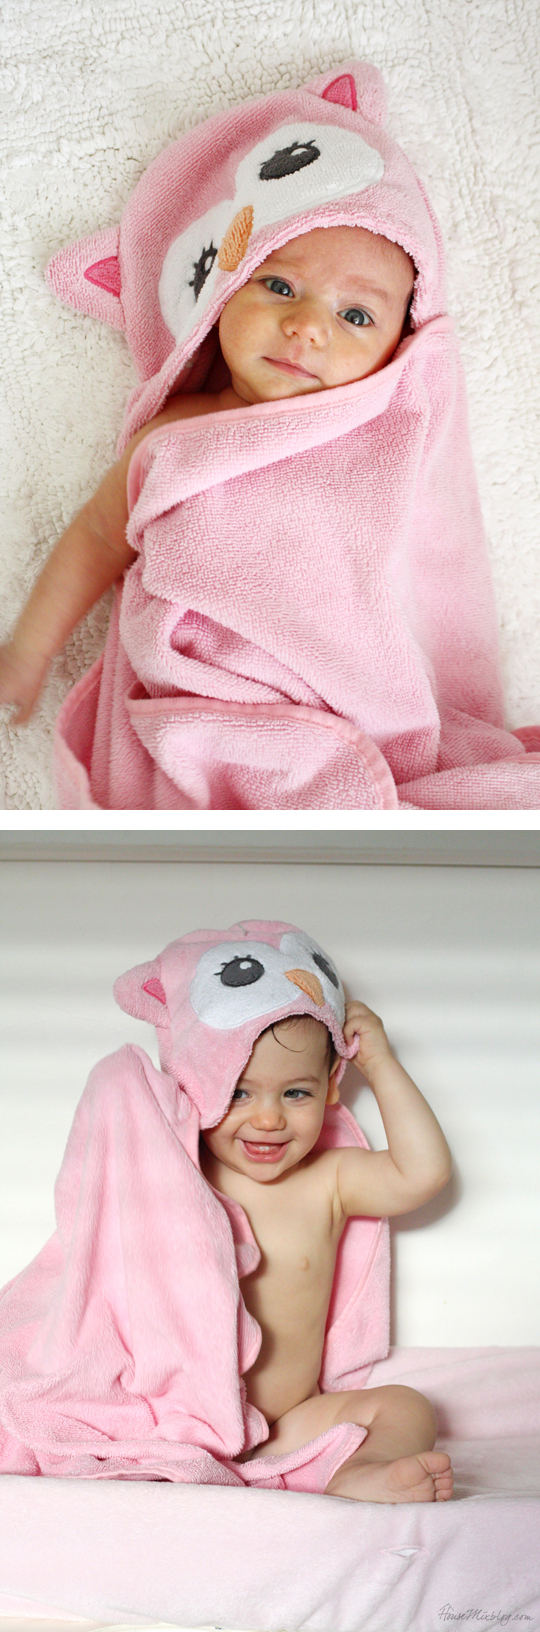 Take newborn picture and first year picture with the same prop to see how they have grown